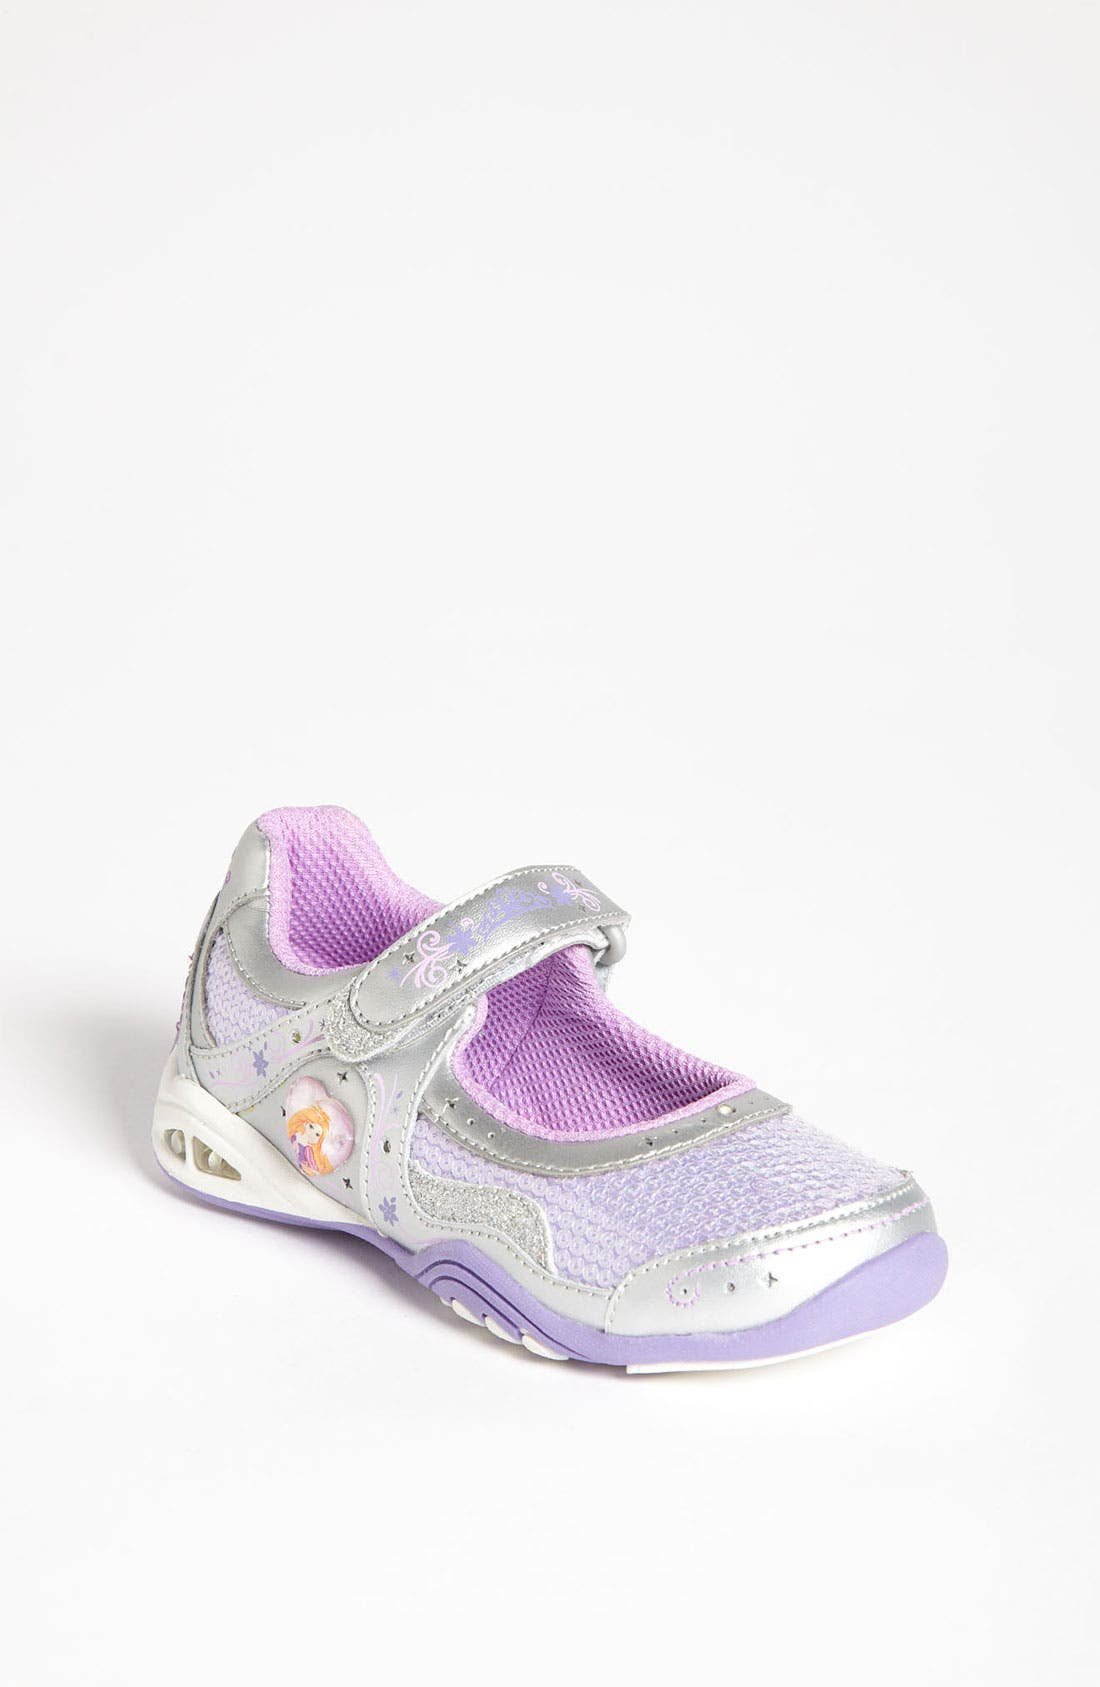 Main Image - Stride Rite 'Disney™ - Rapunzel' Mary Jane Sneaker (Toddler)